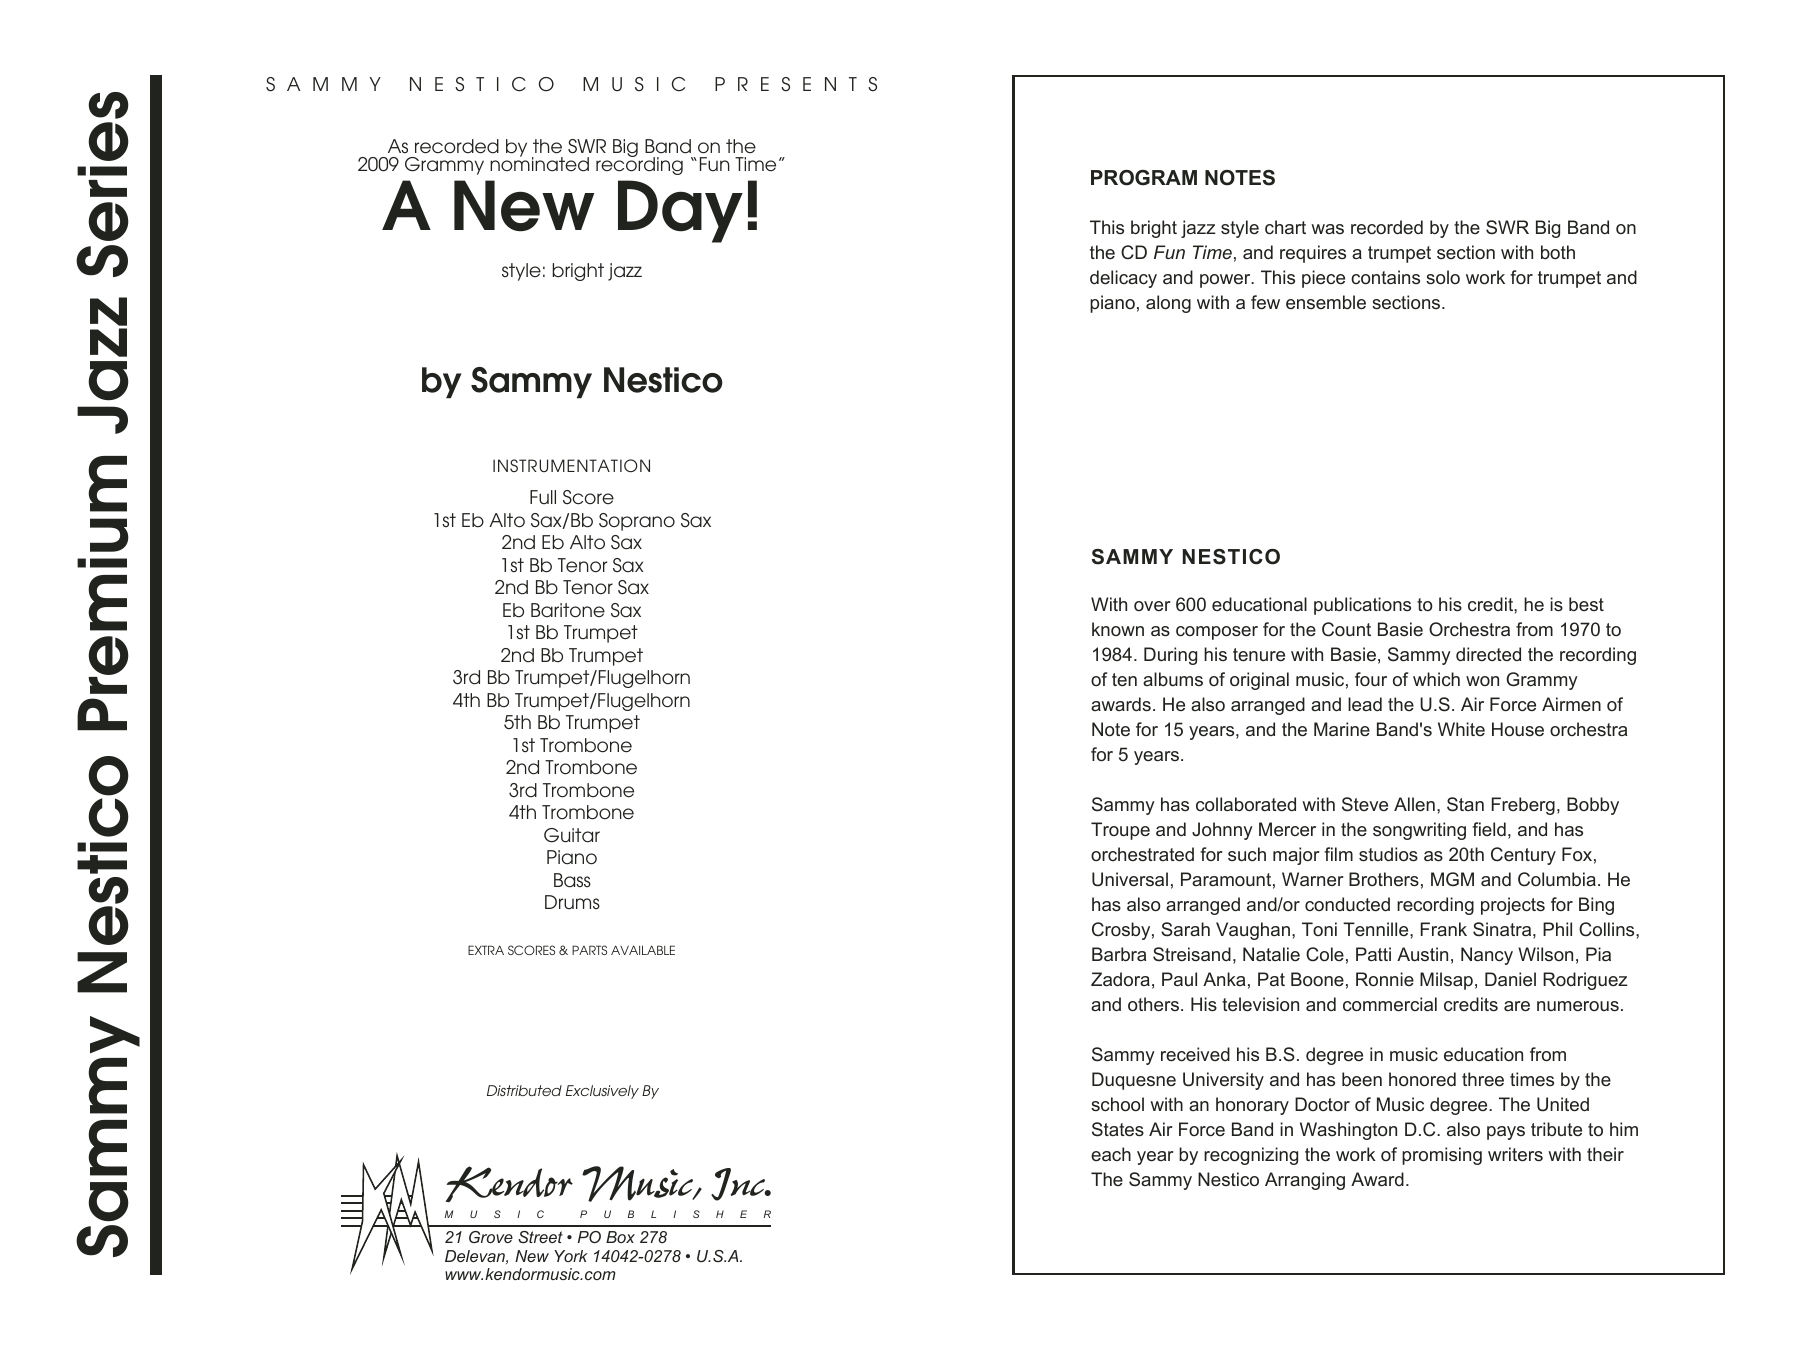 A New Day! - Full Score Sheet Music